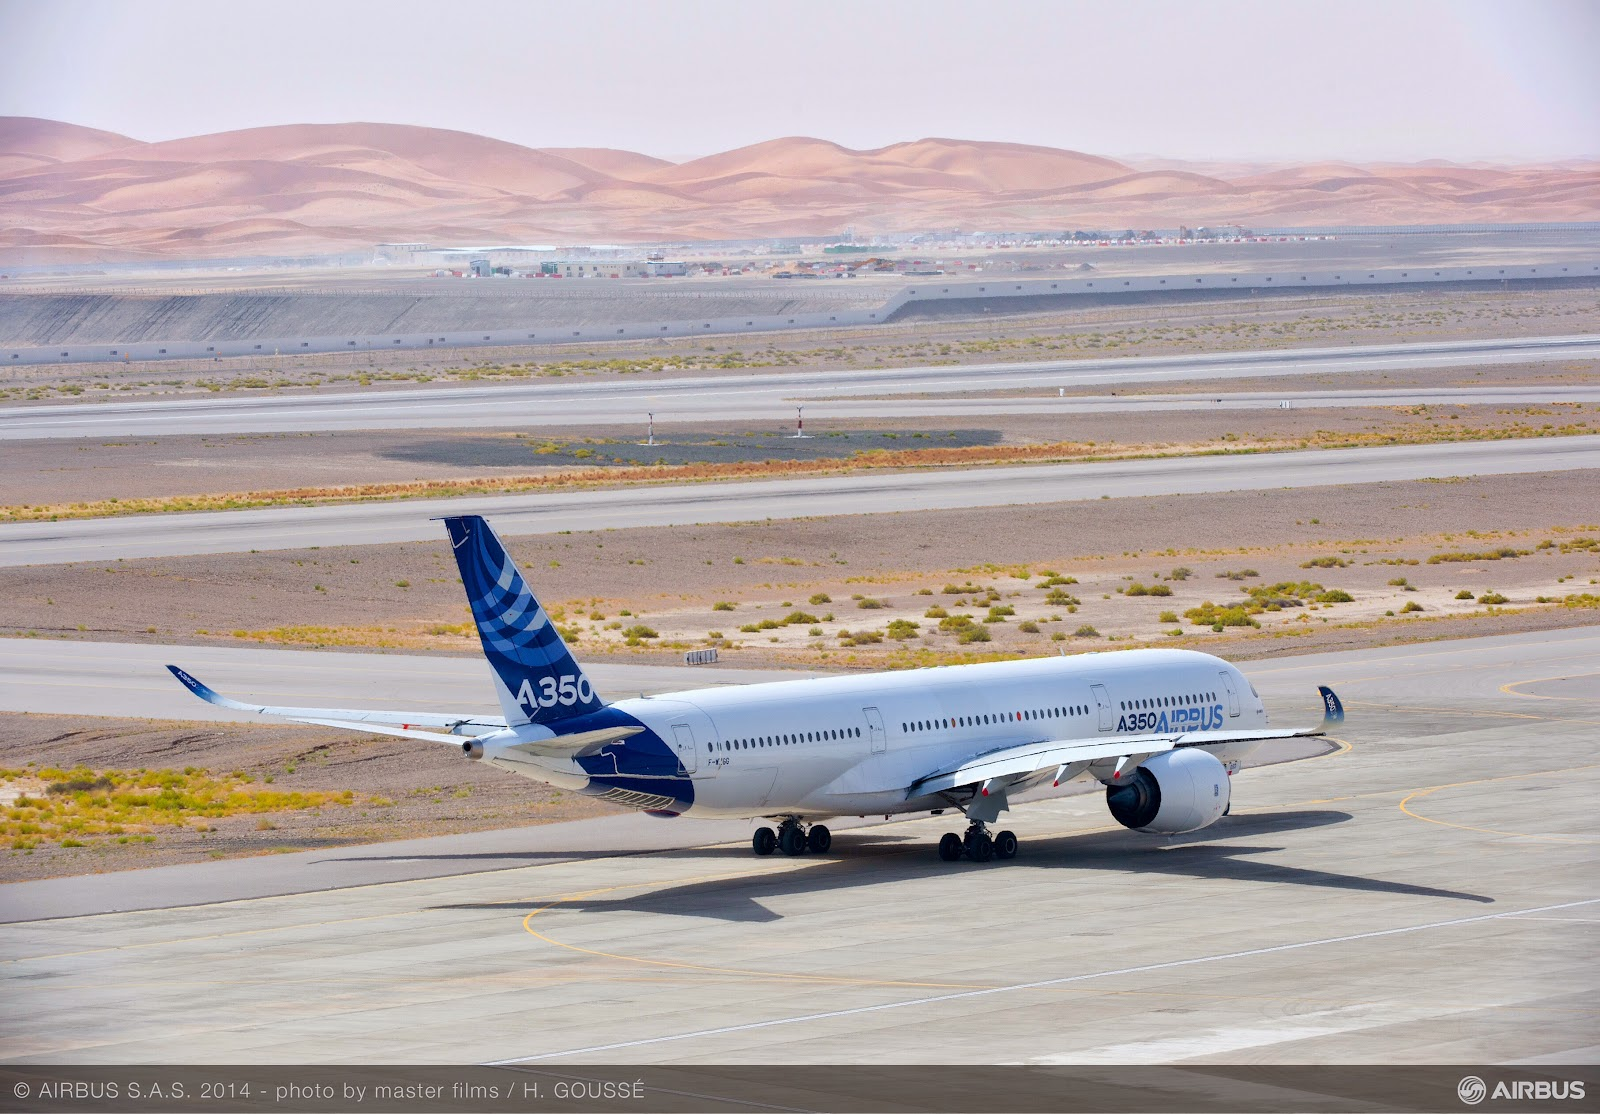 airbus strategy 94 airbus strategy jobs search job openings, see if they fit - company salaries, reviews, and more posted by airbus employees.